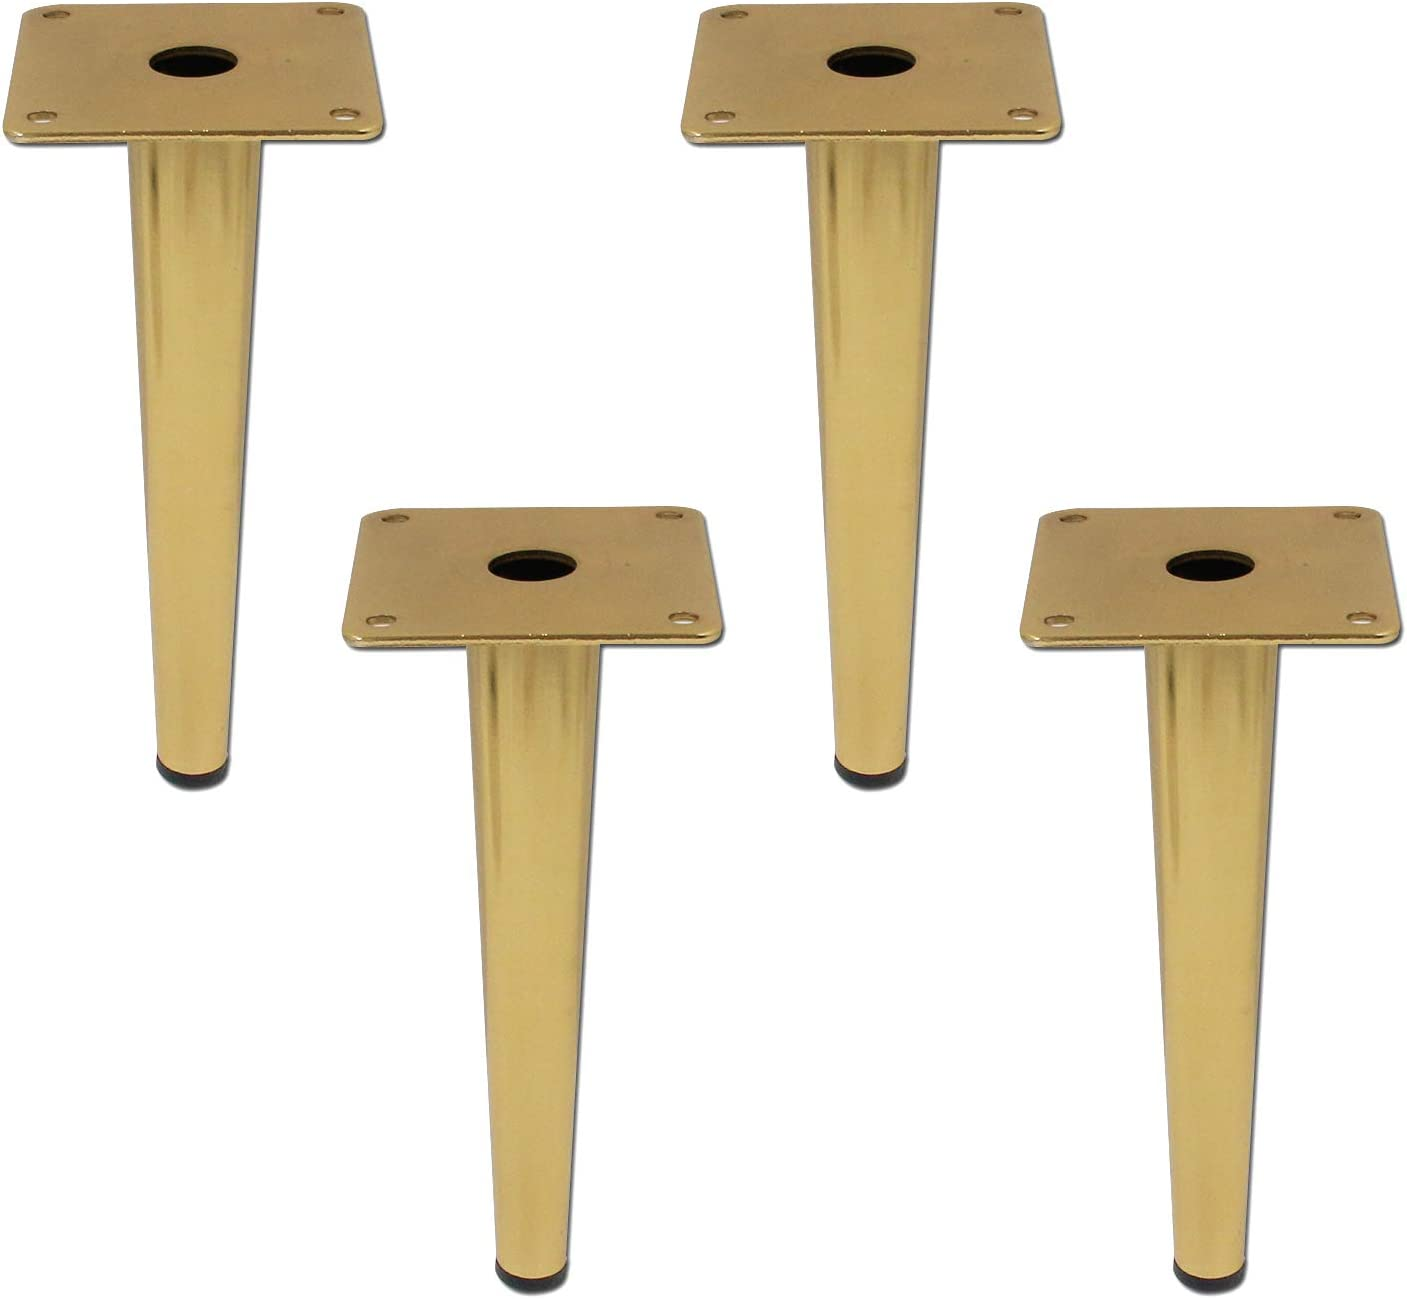 Geesatis 4 pcs Round Tall Sleek Tapered Furniture Legs Cabinet Cupboard Table Chair Table Metal Feet, with Mounting Screws, Height 20cm / 8inch, Gold